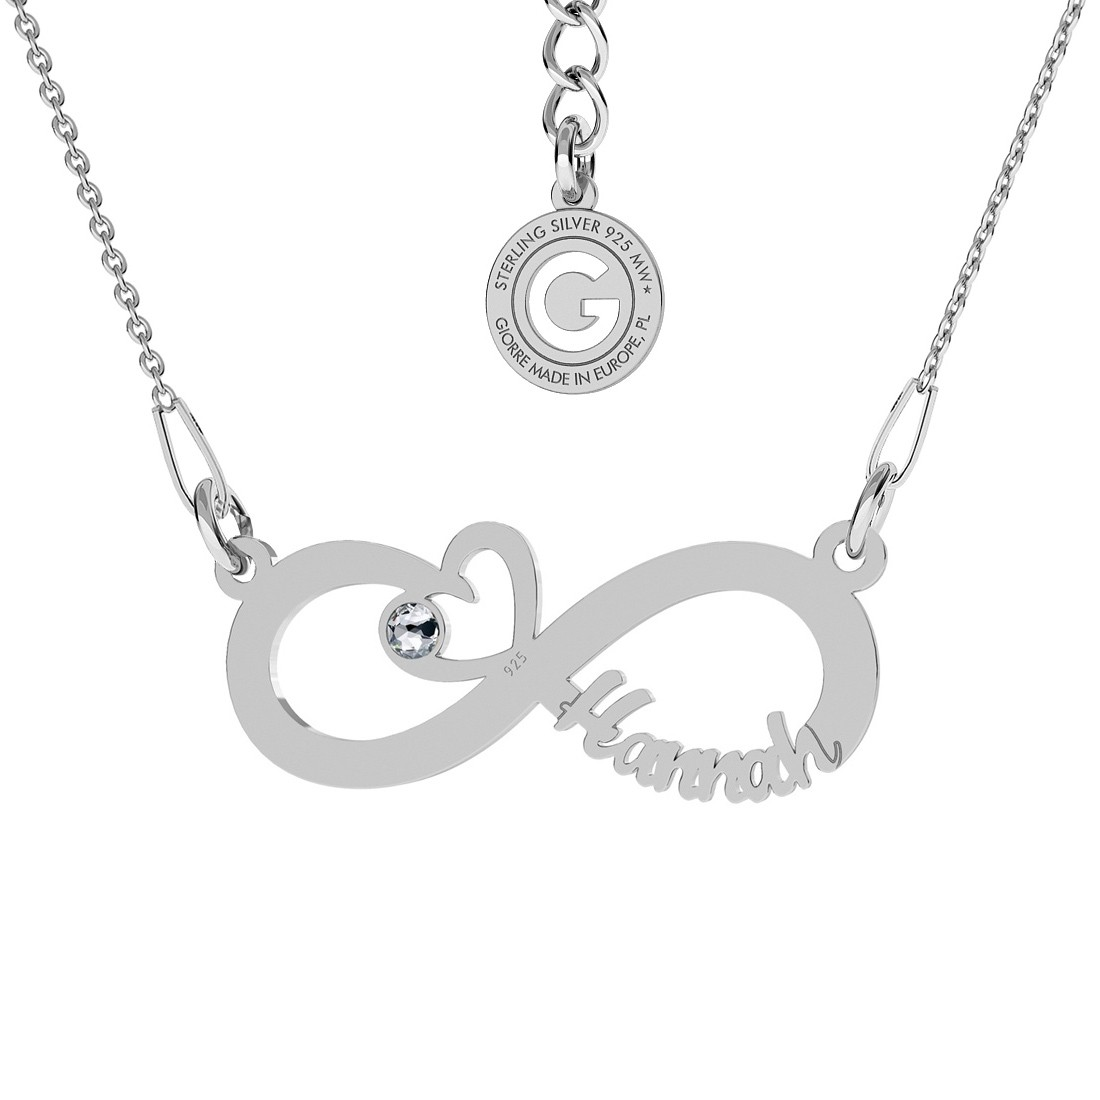 TREBLE CLEF NECKLACE STERLING SILVER 925